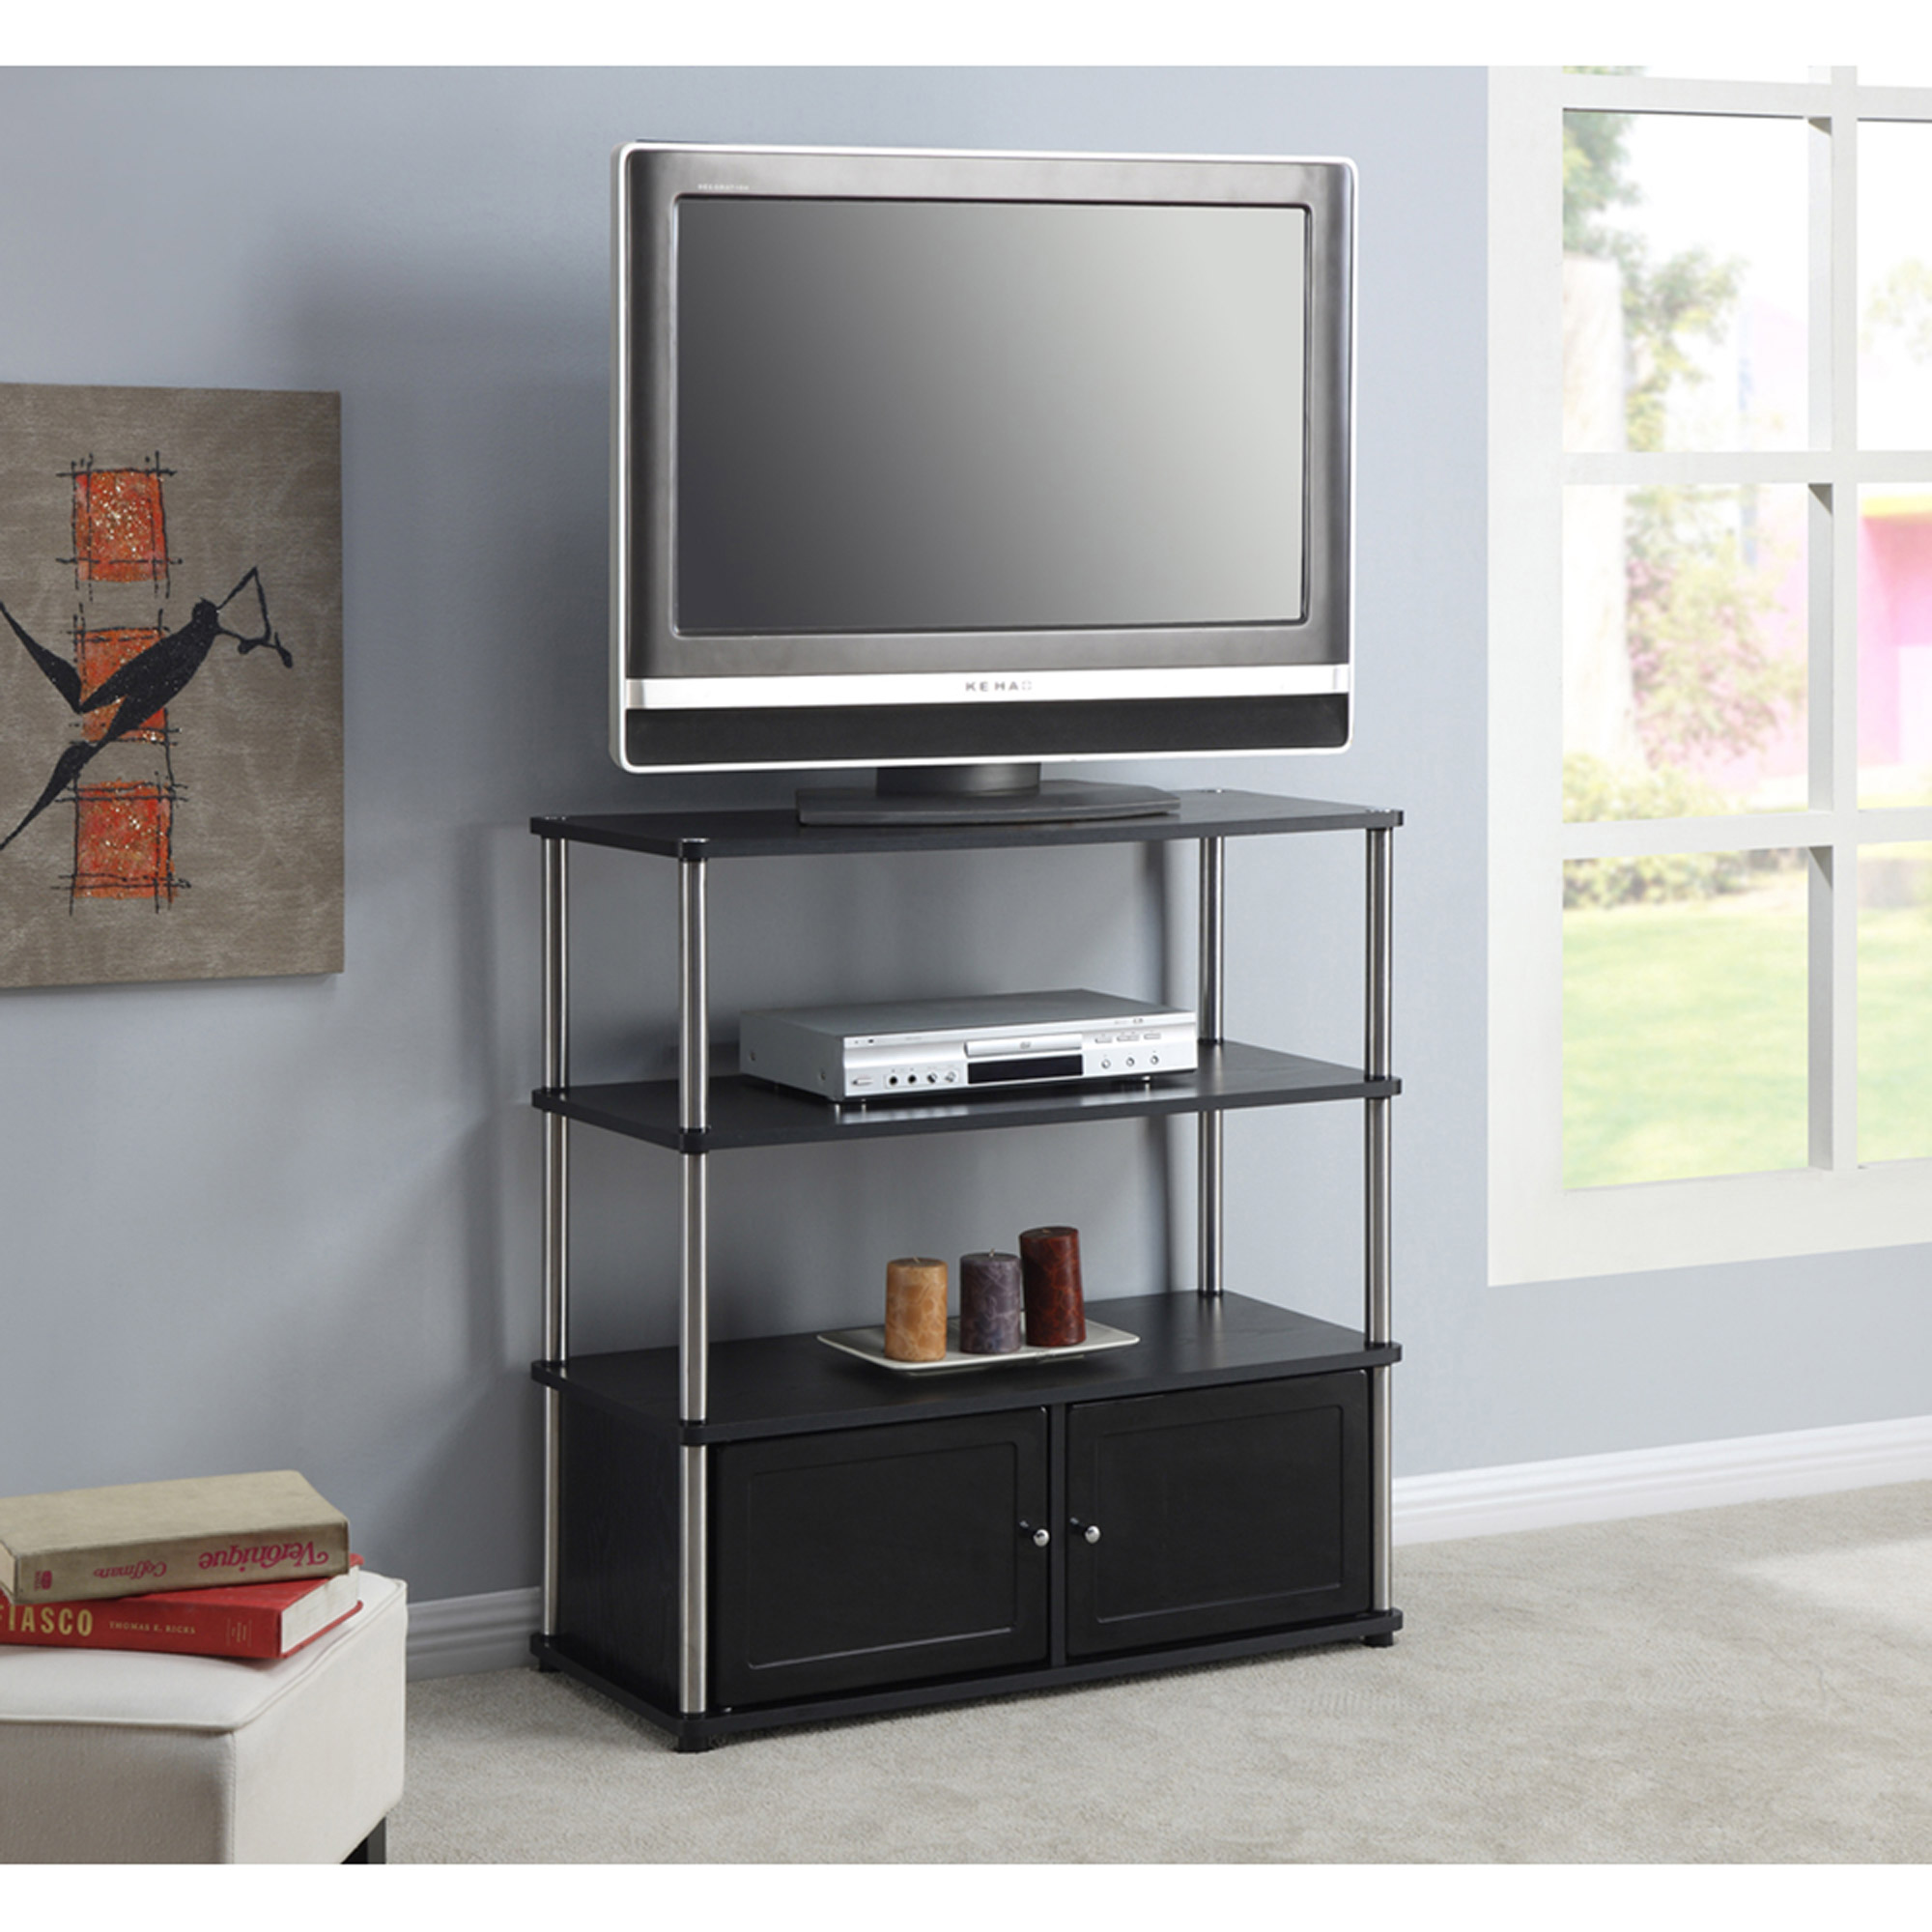 "Designs 2 Go High Boy TV Stand in Black, for TVs up to 37"" by Convenience Concepts"